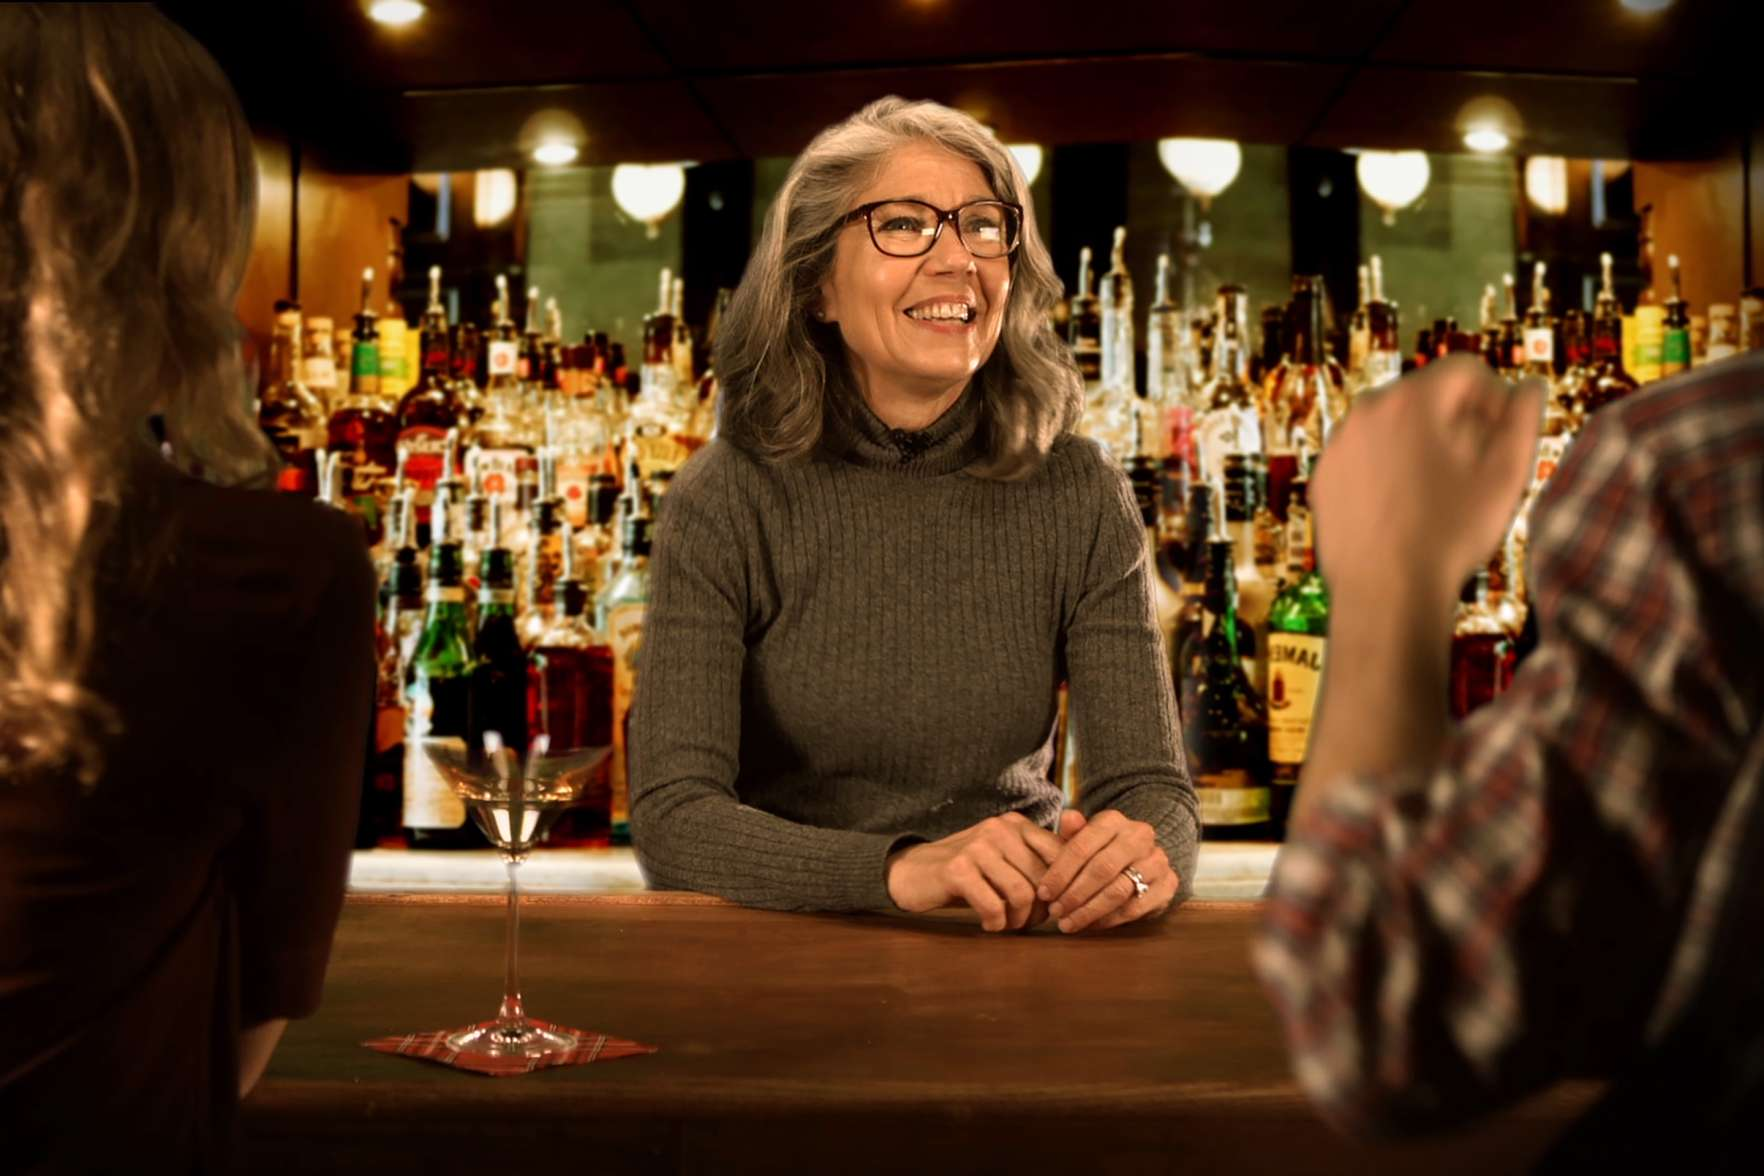 Author Helen Rothberg bartends in a video promoting her book The Perfect Mix: Everything I Know About Leadership I Learned as a Bartender.